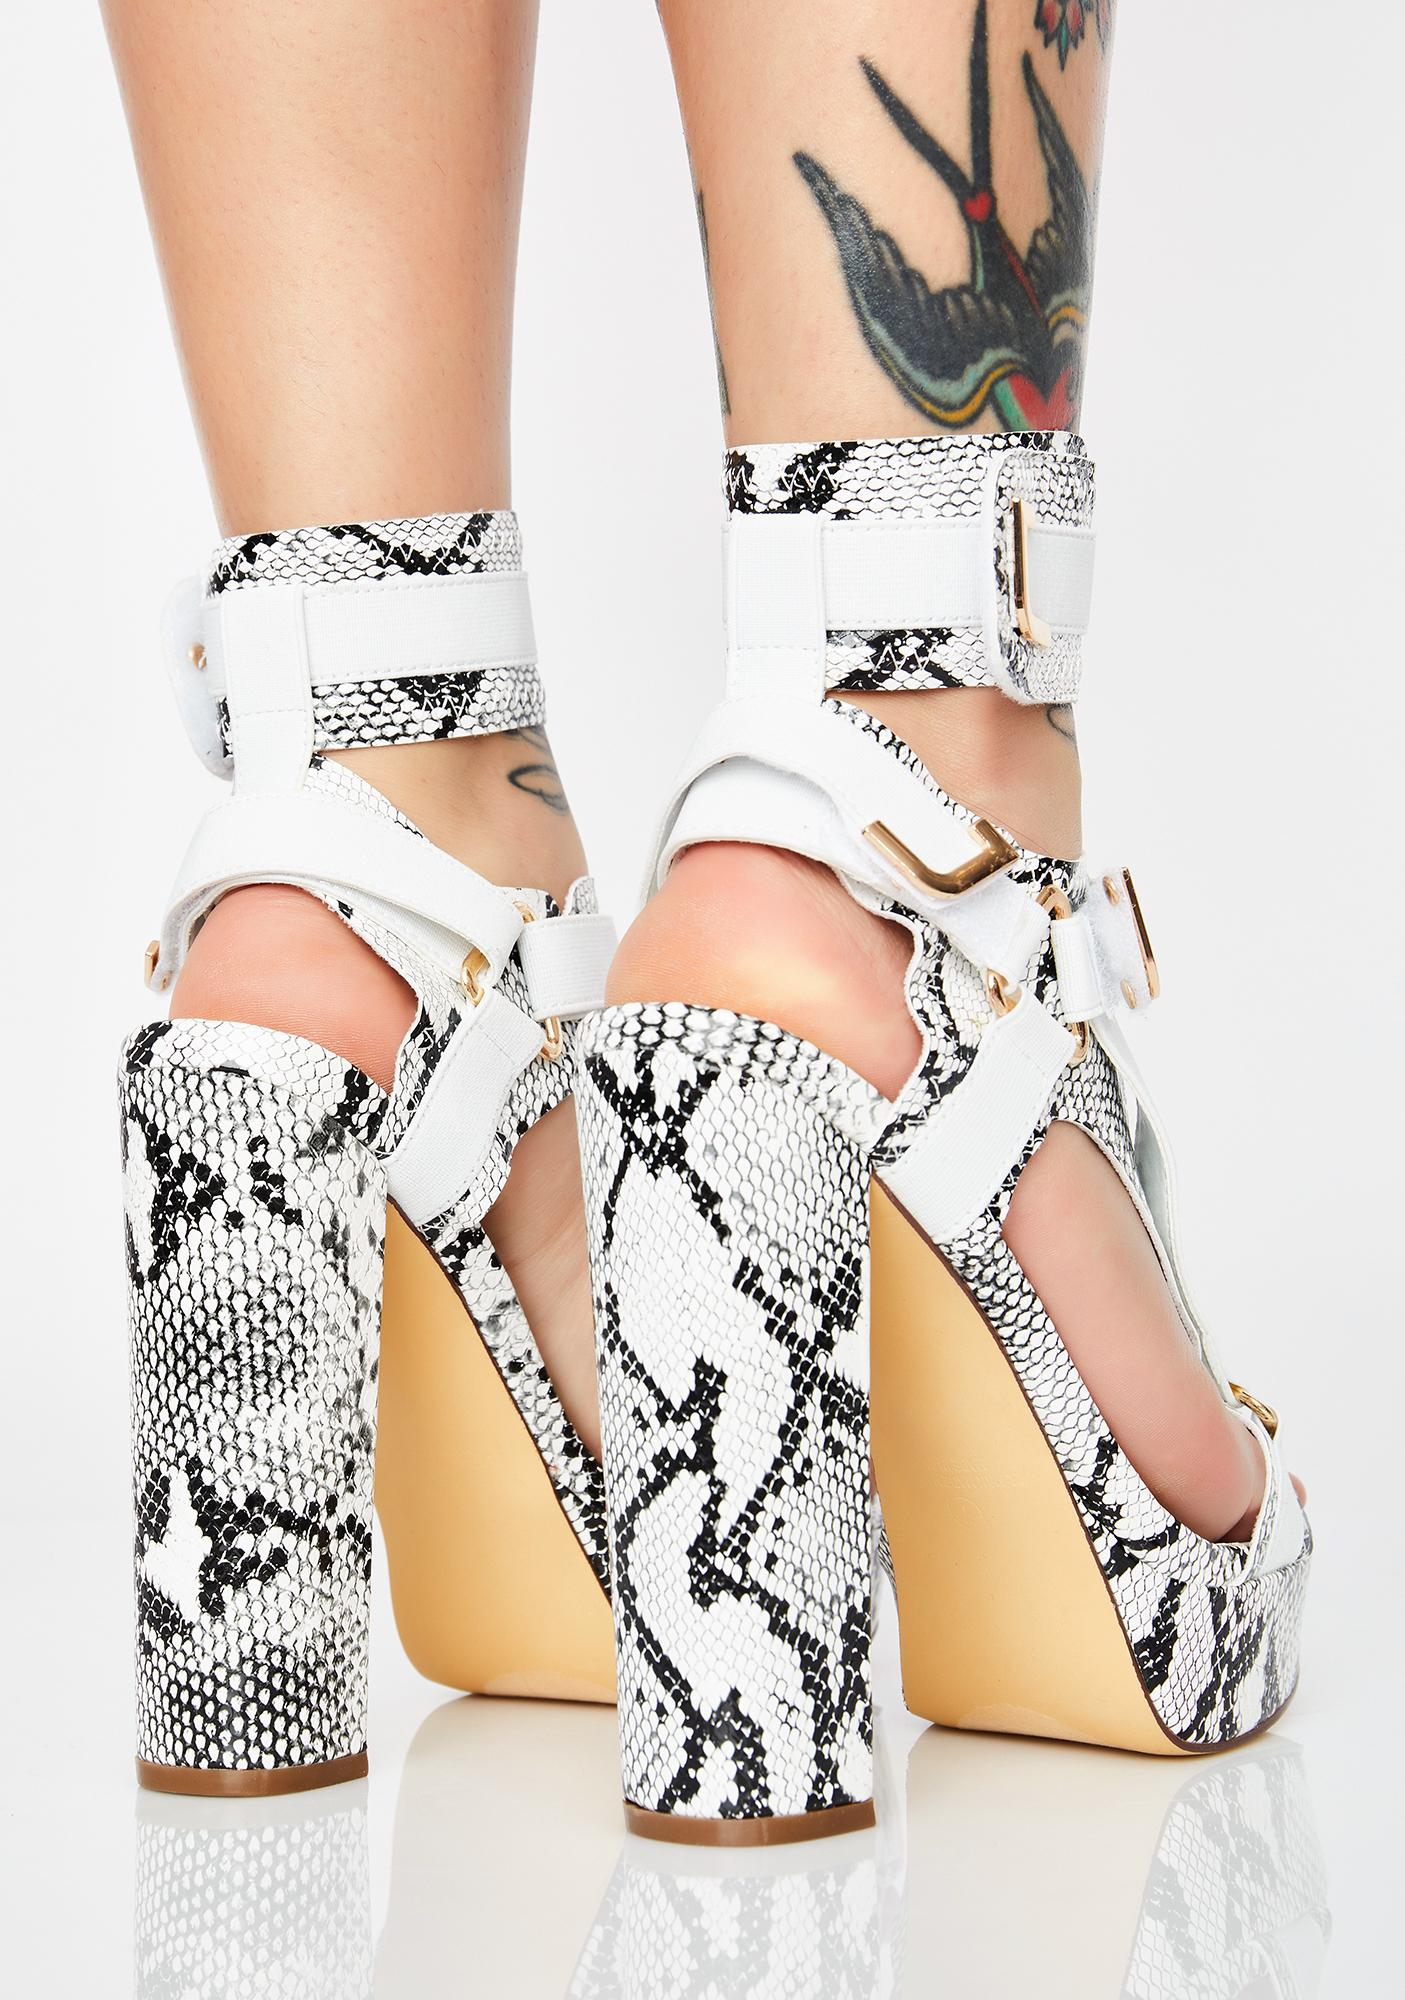 Vile Ready For Takeoff Strappy Heels